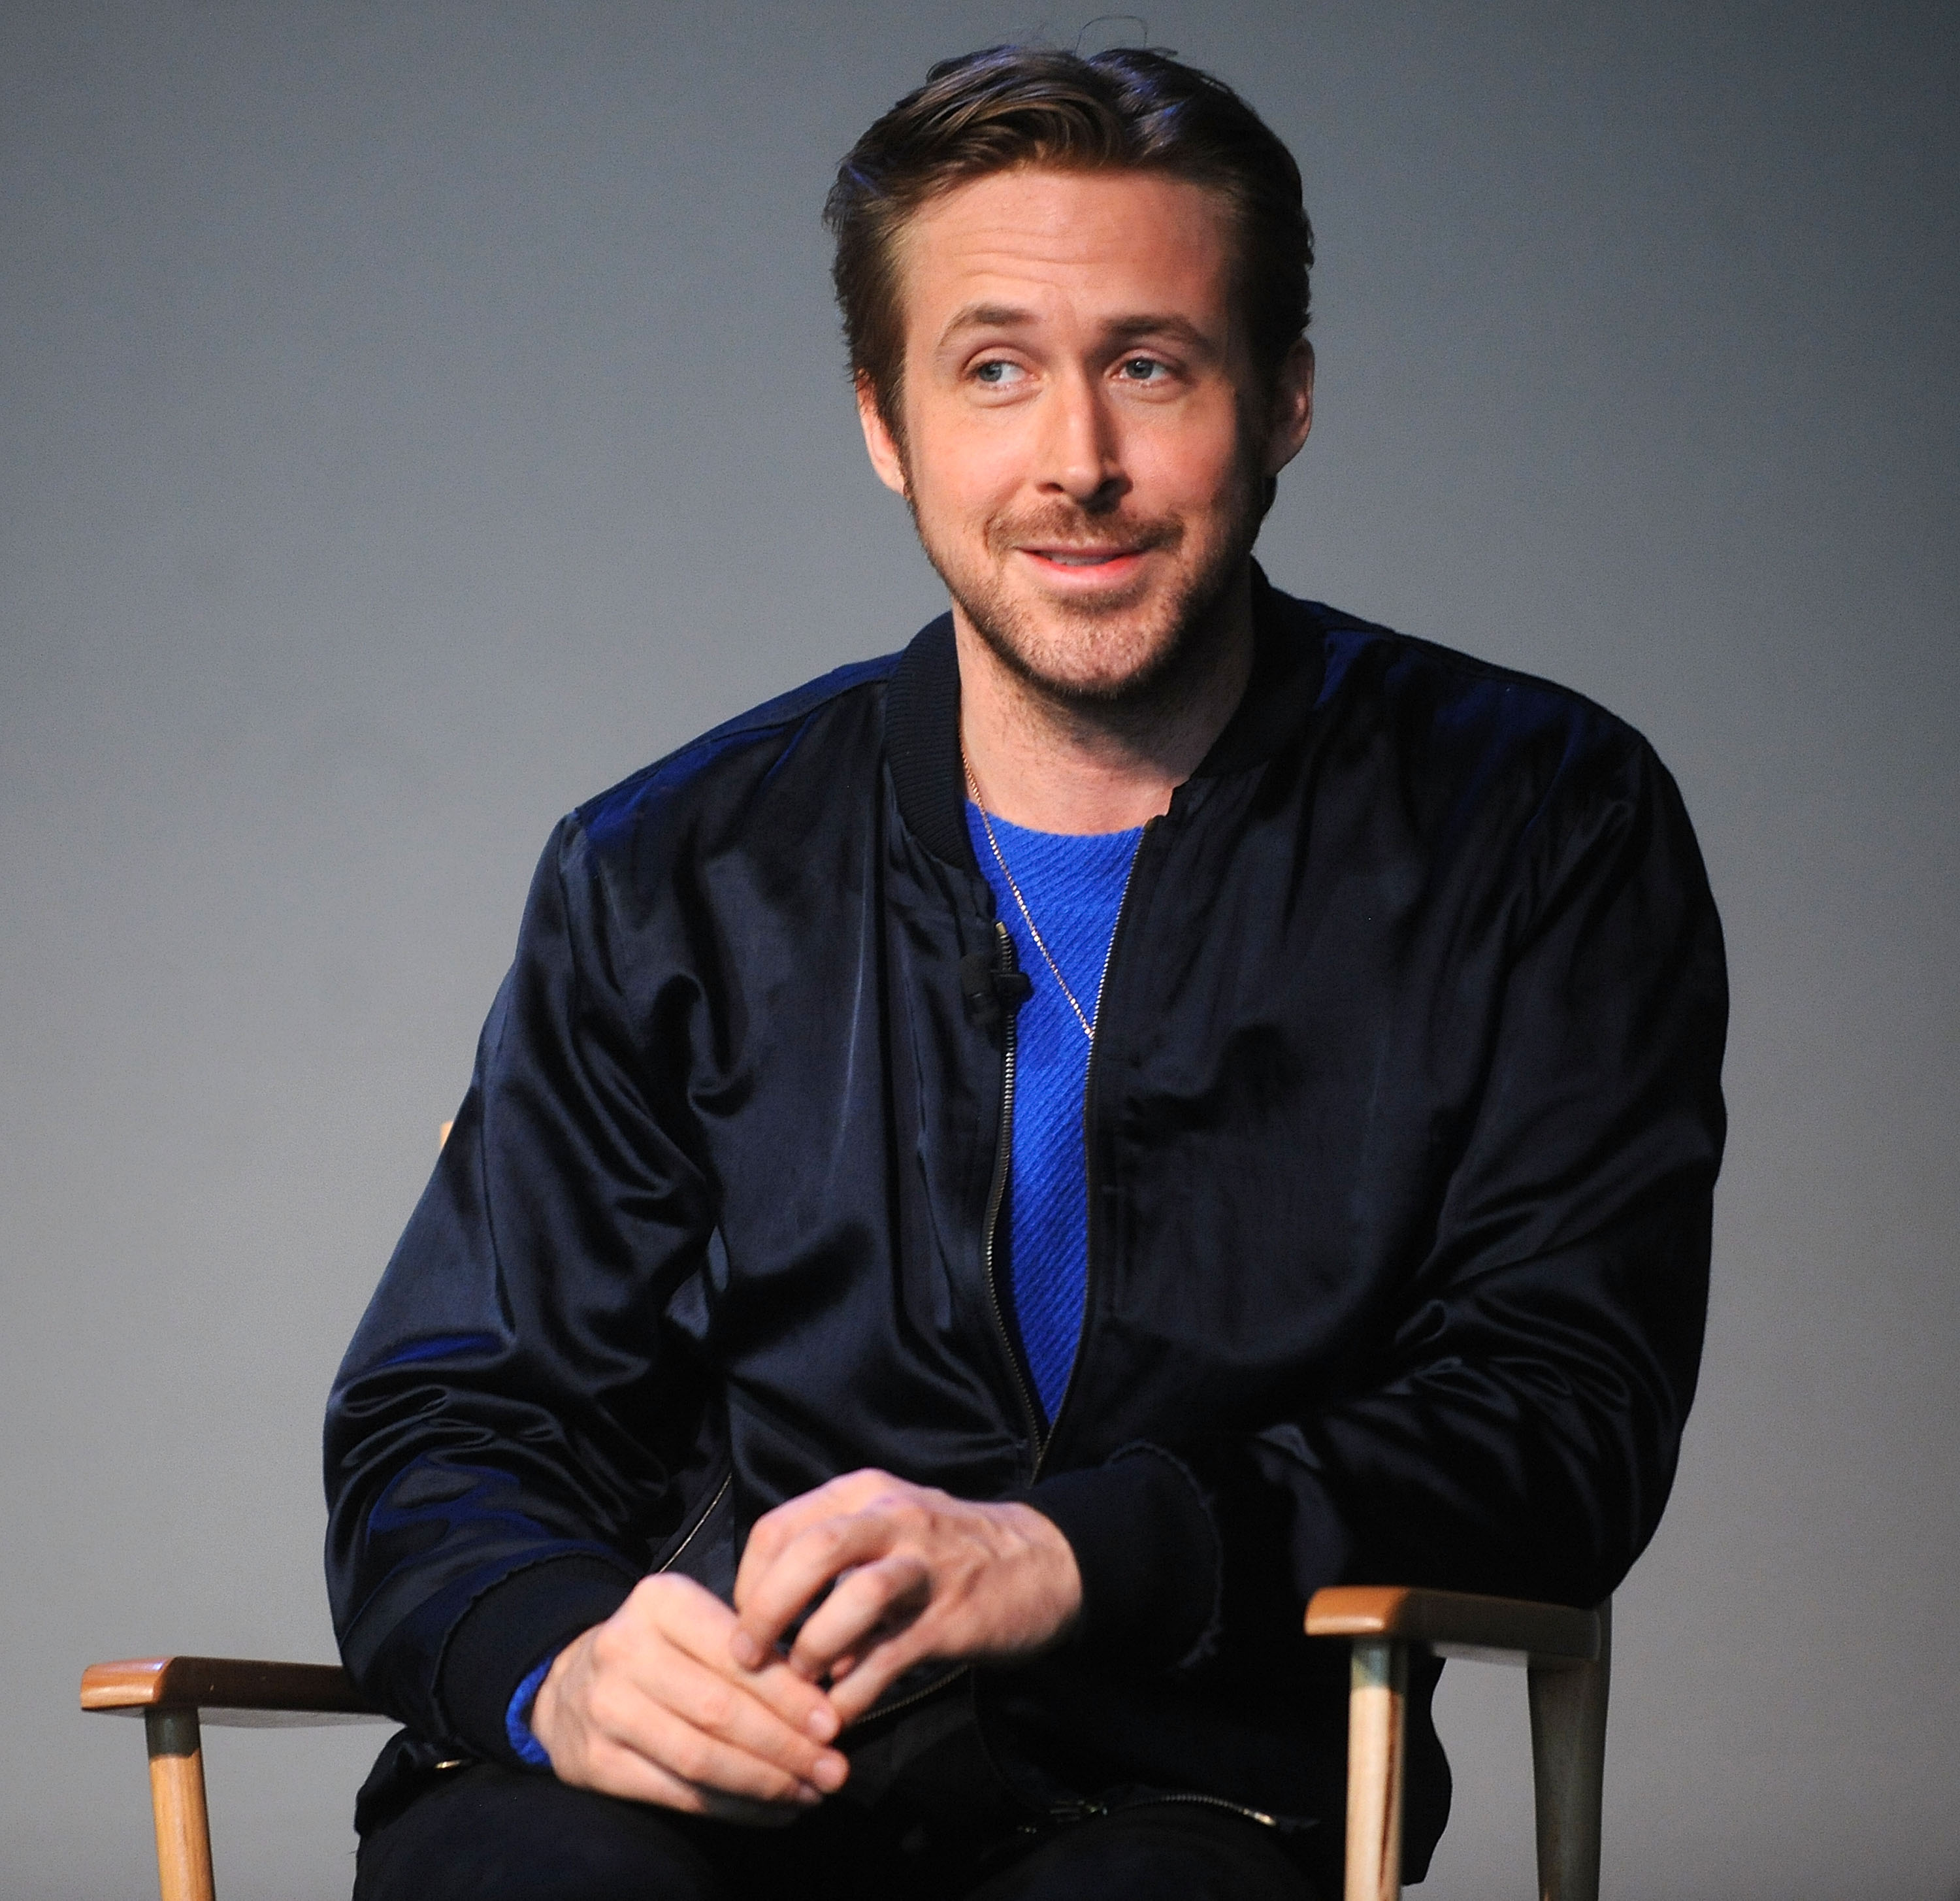 """Ryan Gosling attends Apple Store Soho Presents Meet The Filmmaker: Ryan Gosling, """"Lost River"""" at Apple Store Soho on April 11, 2015 in New York City 